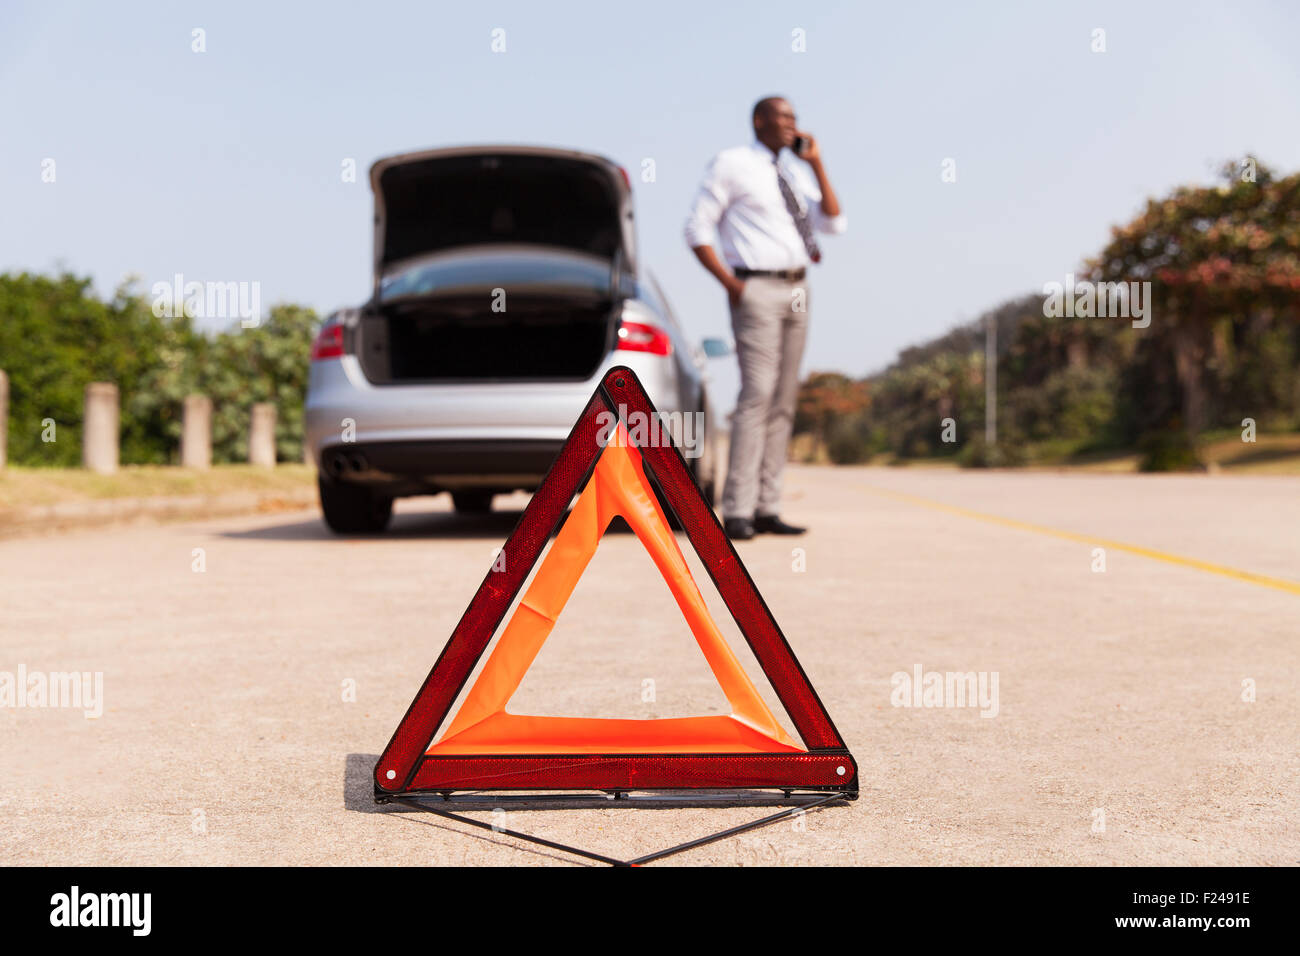 Car Broke Down >> African Male Driver Calling For Help After Car Broke Down By